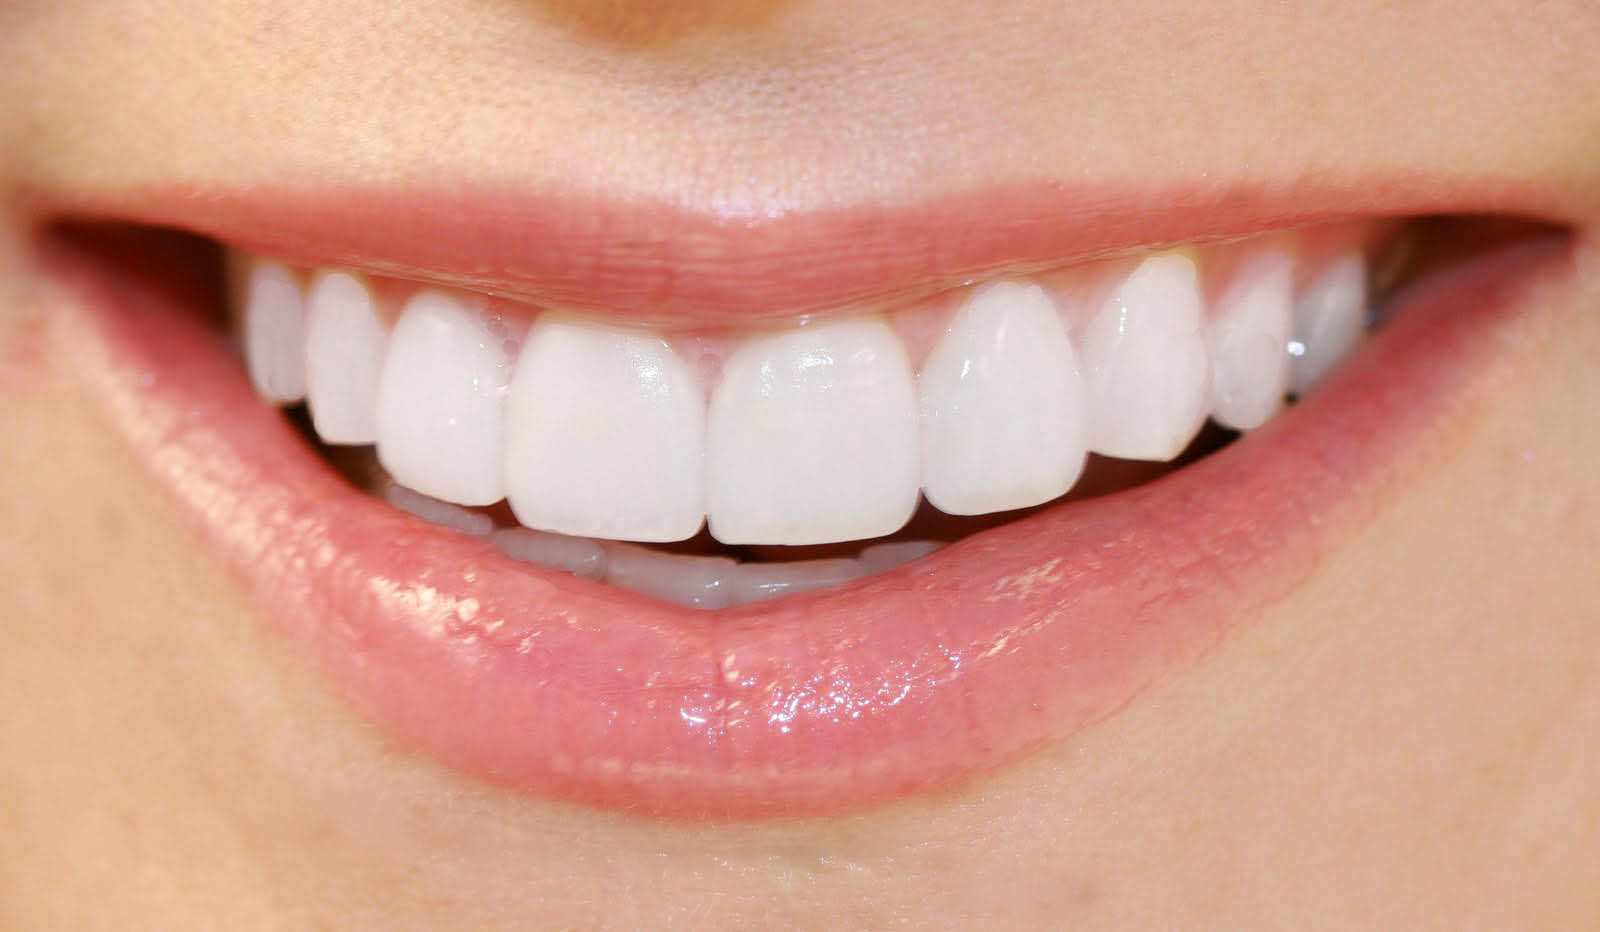 Your teeth will look and feel great with the help of My Smile Dental Care.